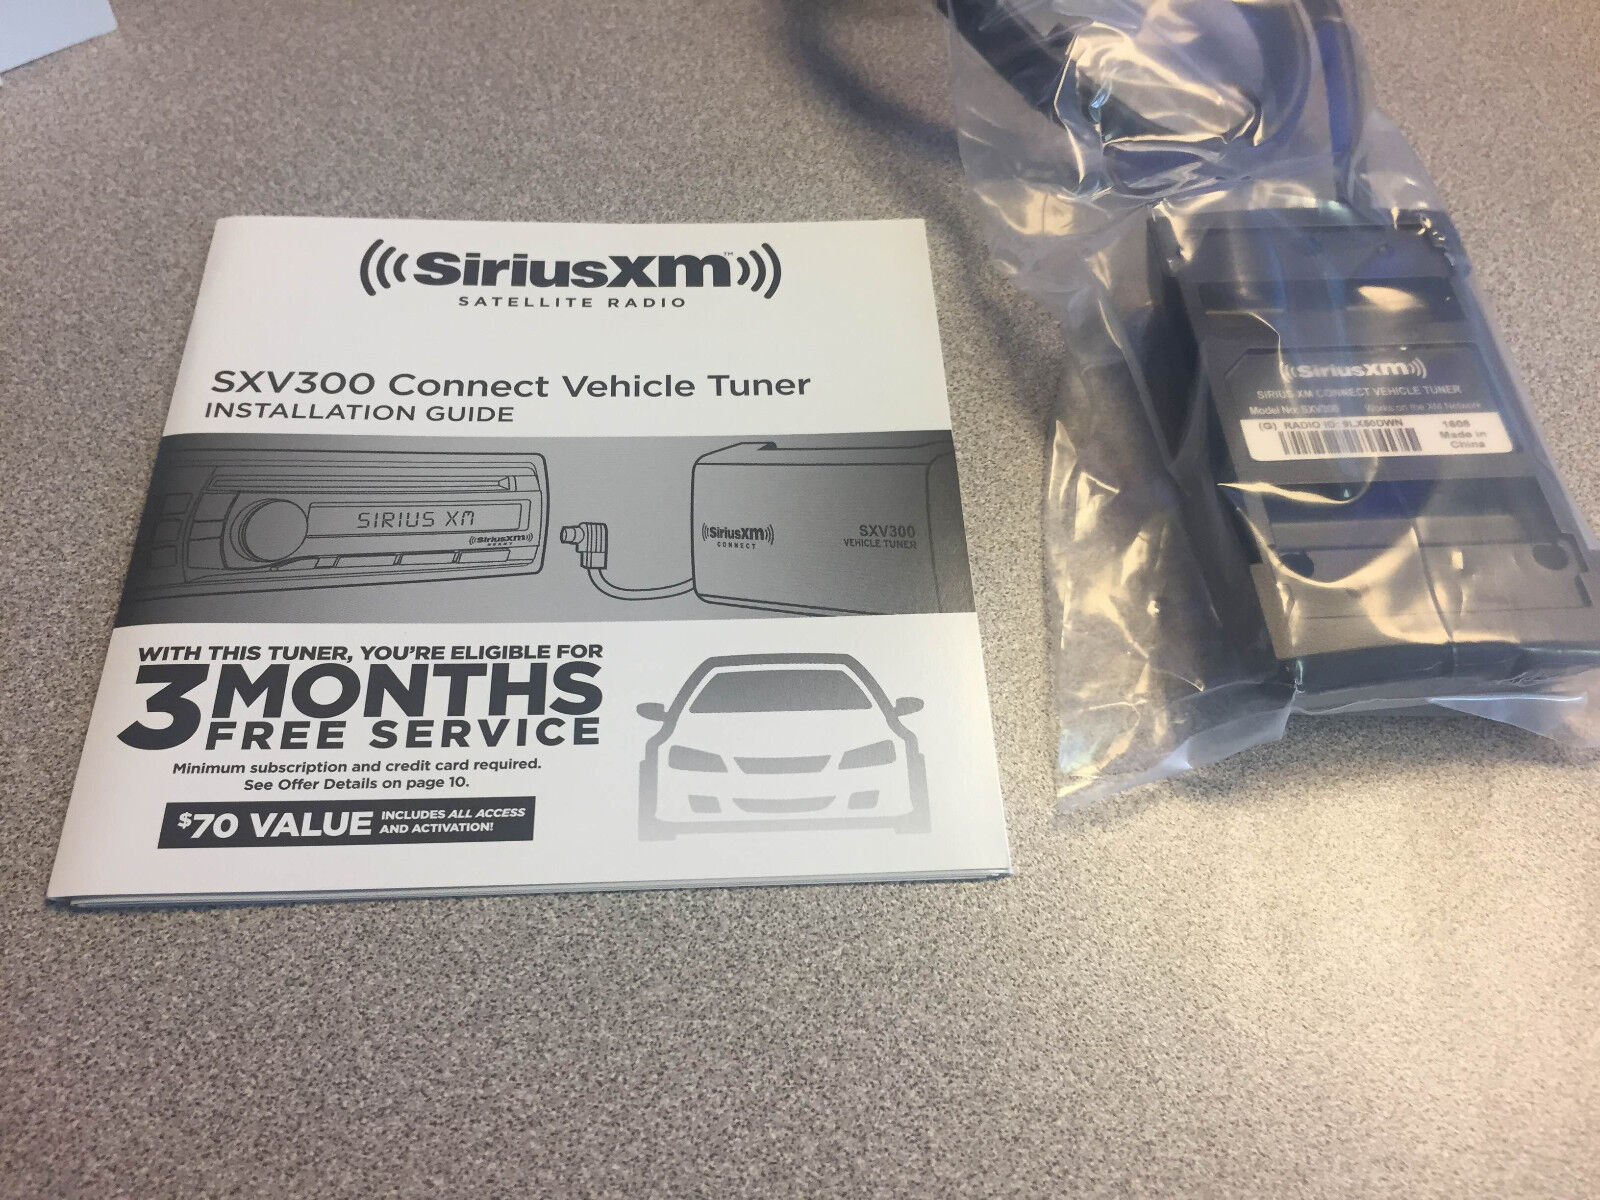 new sirius xm satellite car rv radio sxv300 connect vehicle tuner no rh ebay com sirius setup guide sirius installation instructions